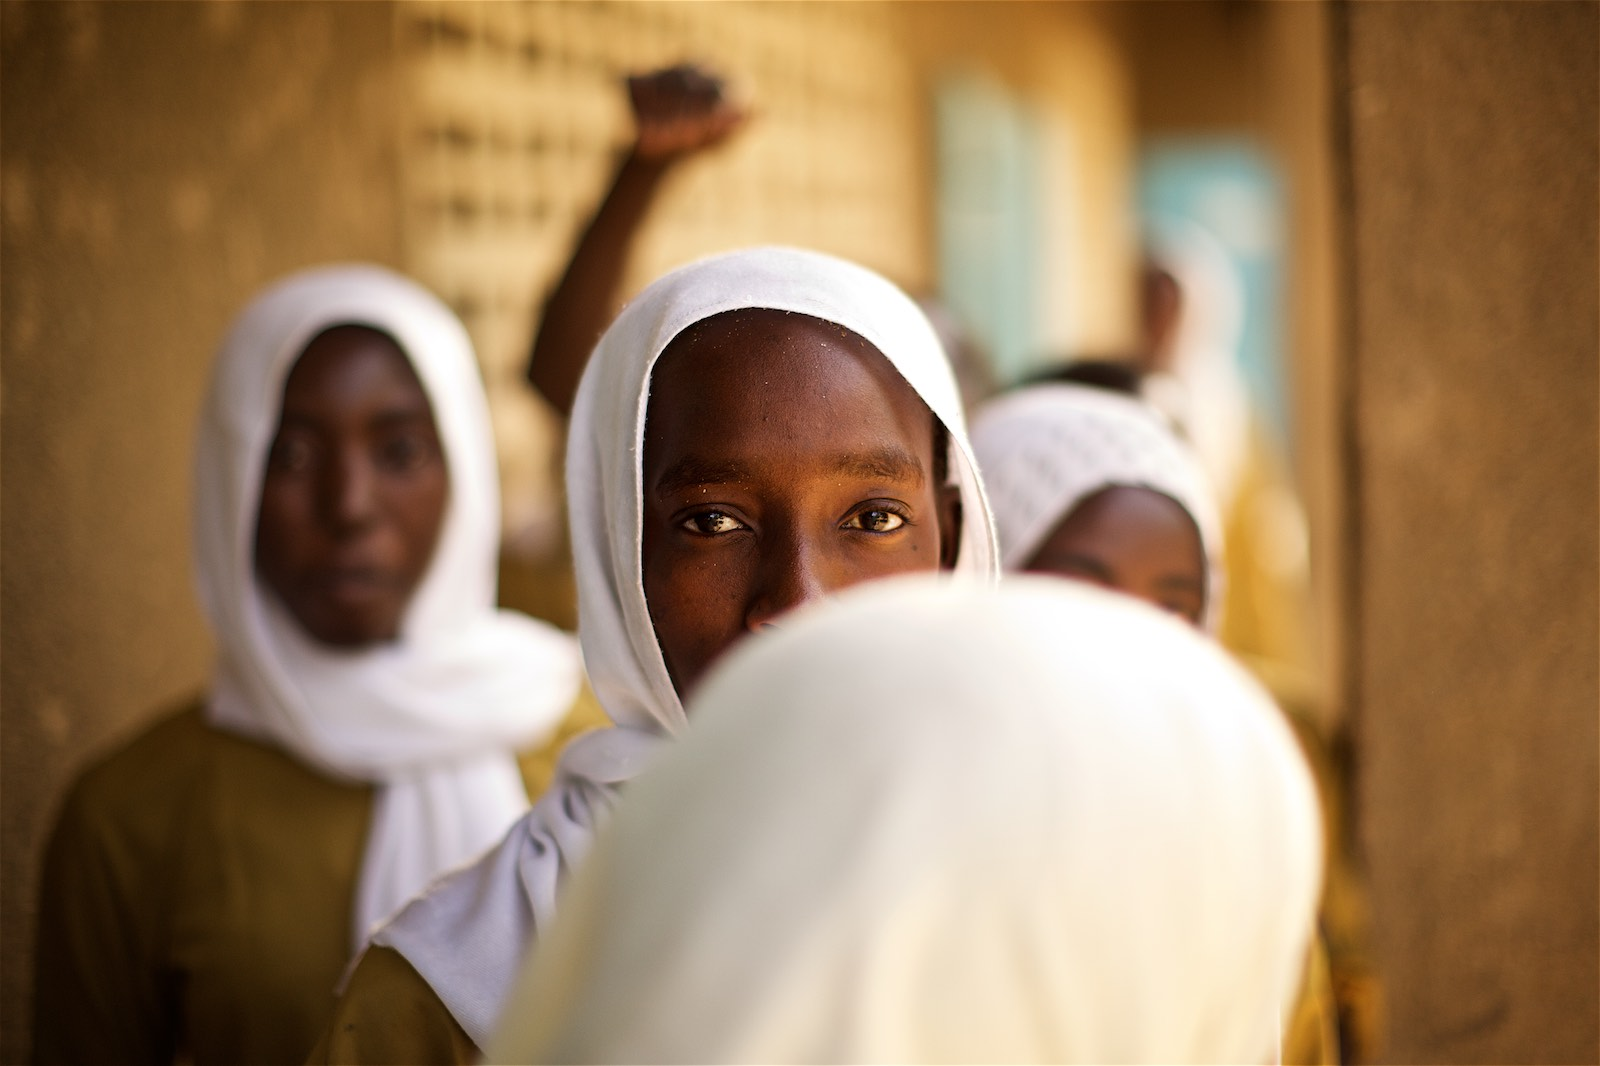 denis-bosnic-chad-school-jrs-jesuit-refugee-service-students-education-mercy-in-motion-26.jpg